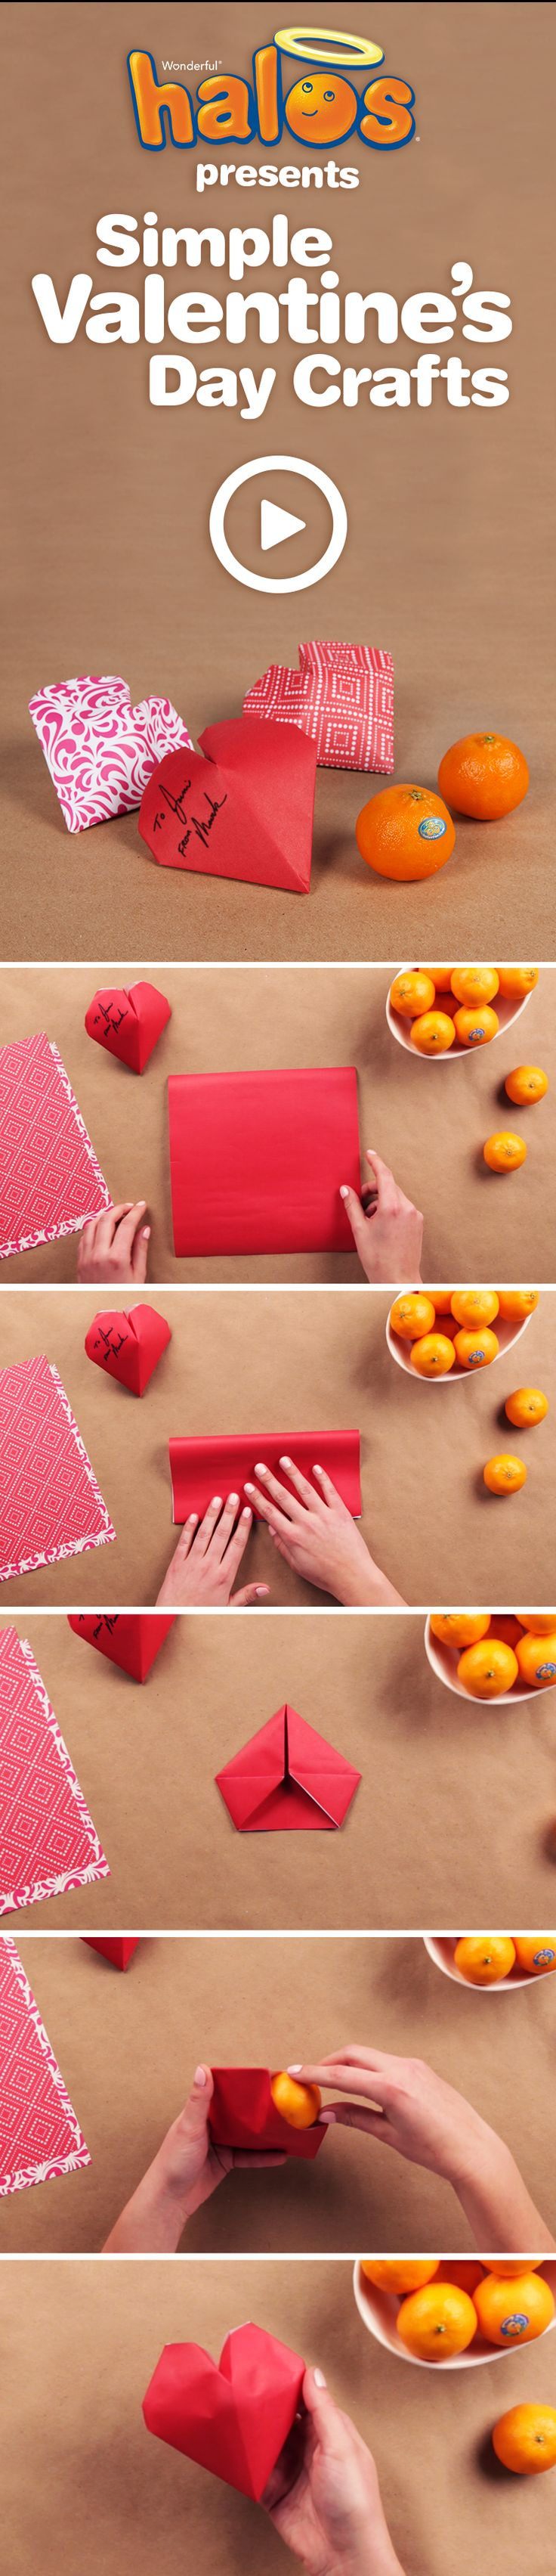 See how to make a simple, healthy Valentine's Day craft that's perfect for the classroom using just Wonderful Halos and craft paper.